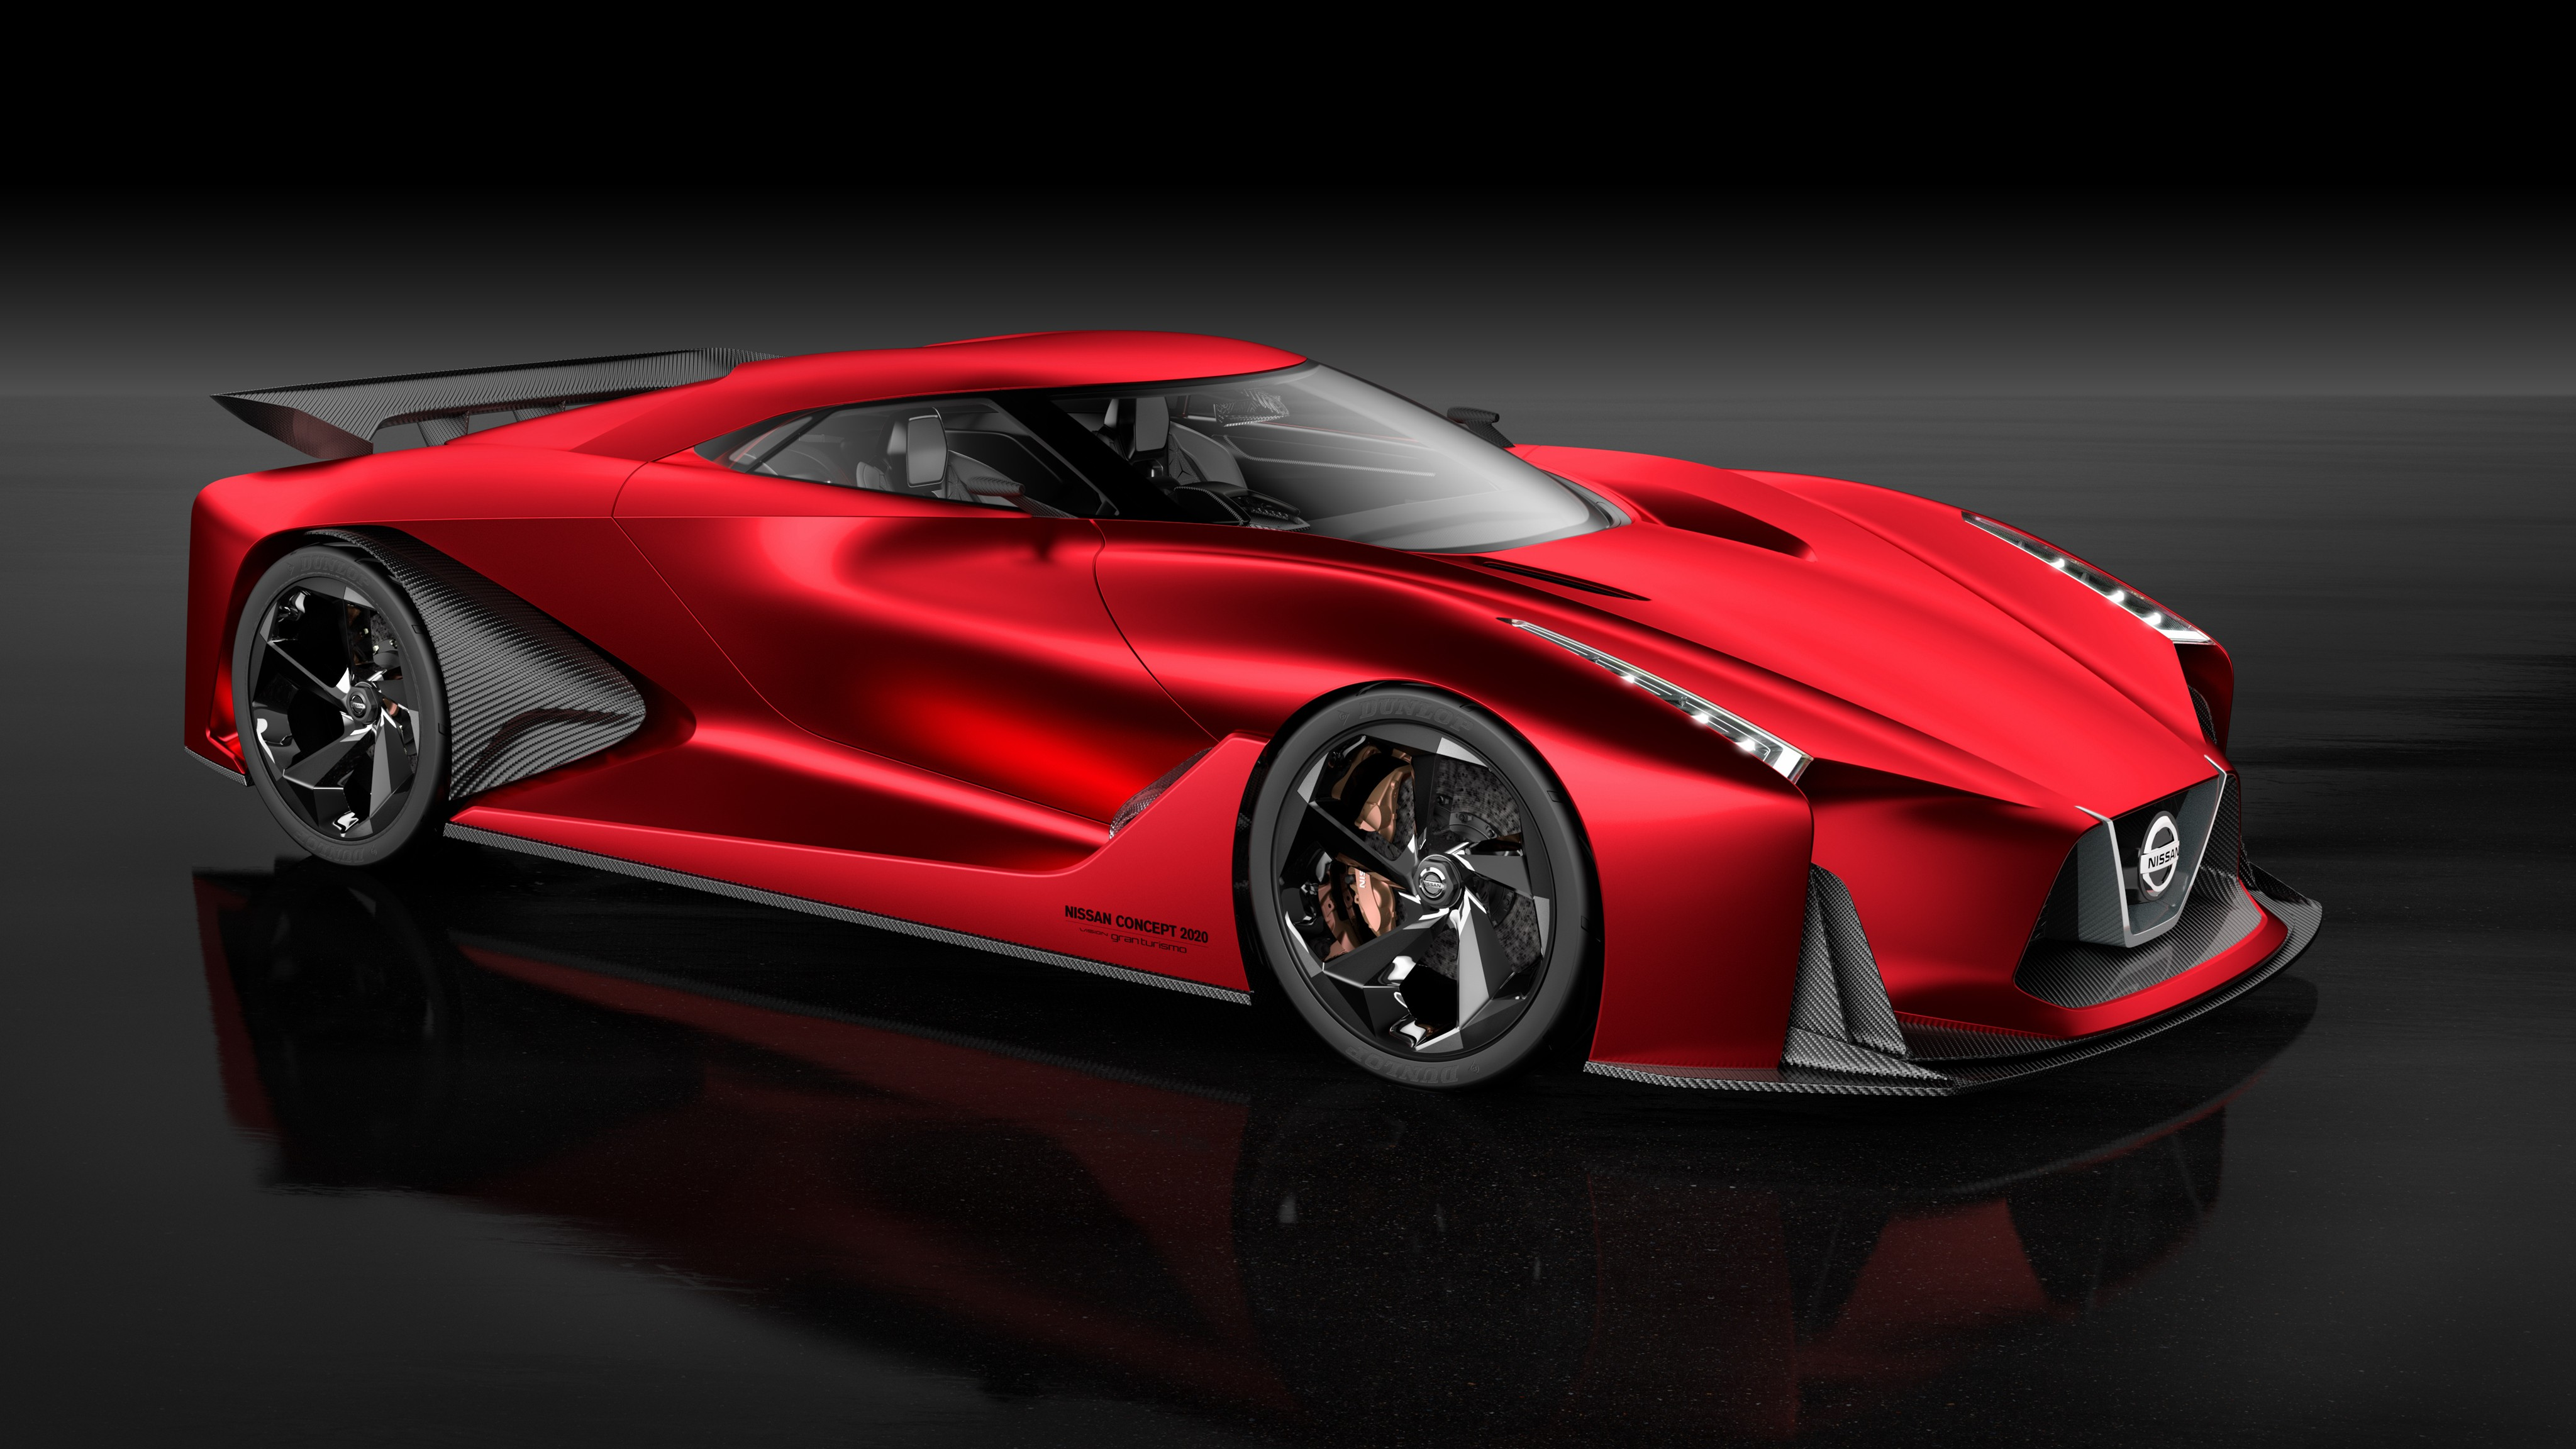 Wallpaper Nissan 2020 Vision Gran Turismo, red, concept, Nissan, supercar, luxury cars, sports ...